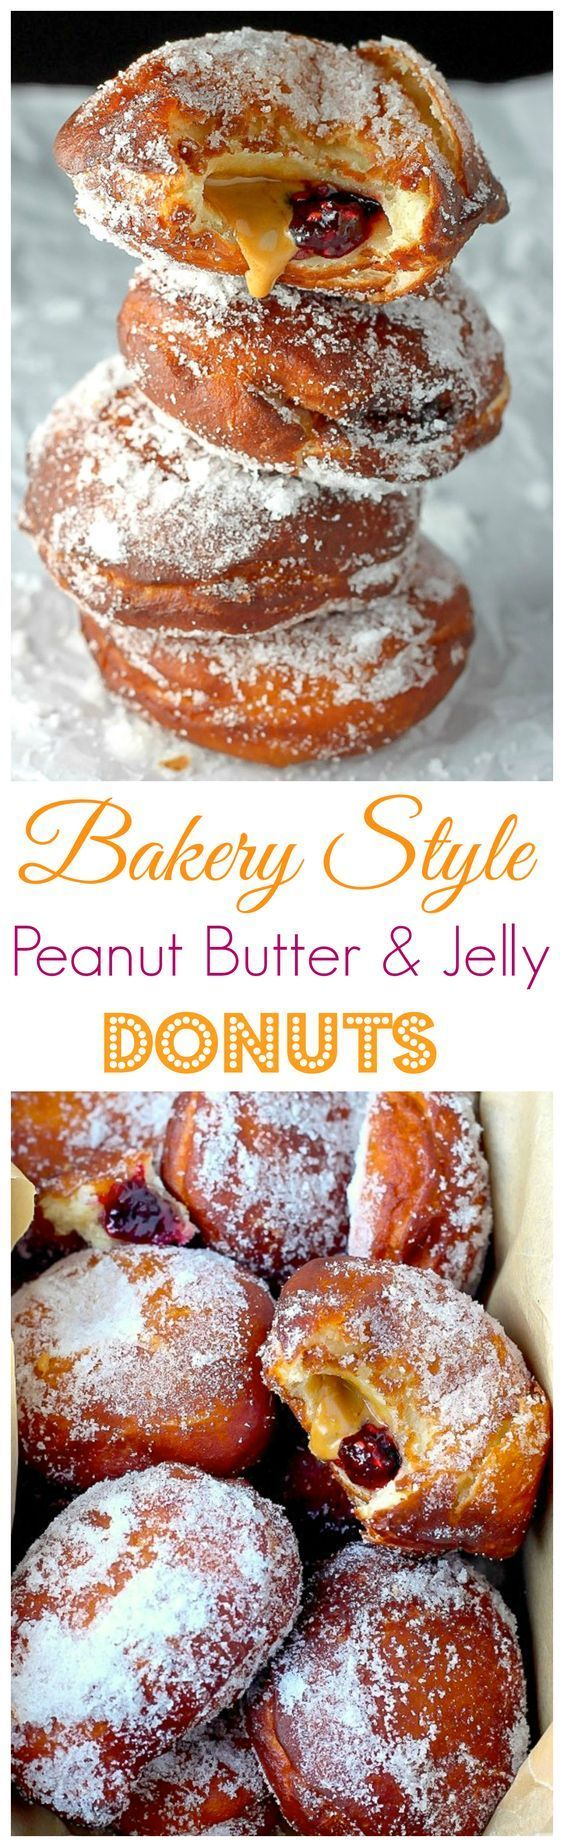 Bakery Style Peanut Butter and Jelly Doughnuts - Soft, fluffy, and stuffed with peanut butter and jelly - these bakery style doughnuts are a classic!